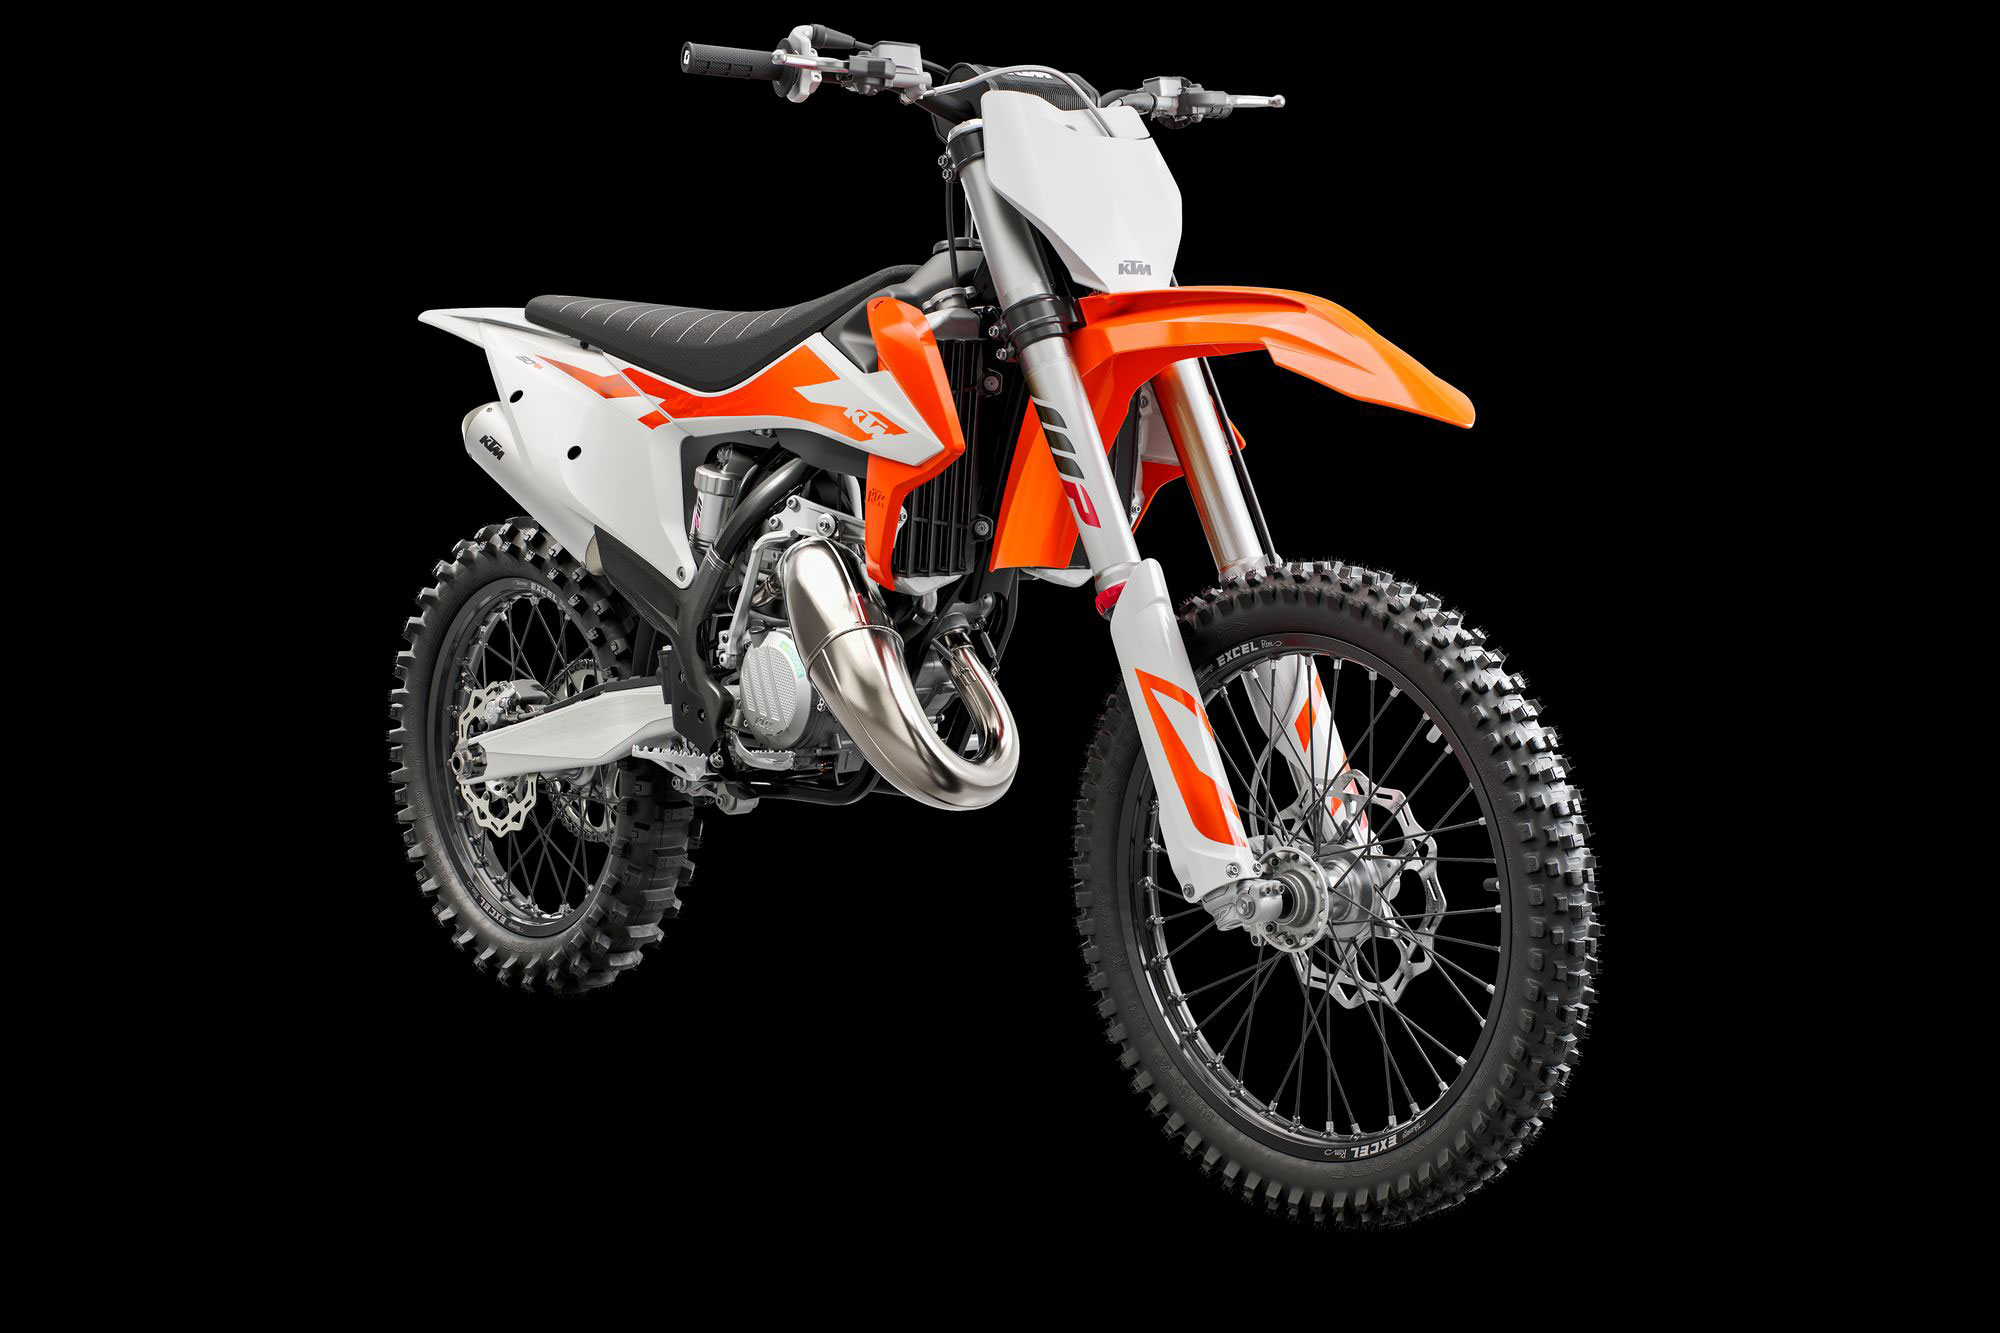 2020 KTM 150 SX Guide • Total Motorcycle